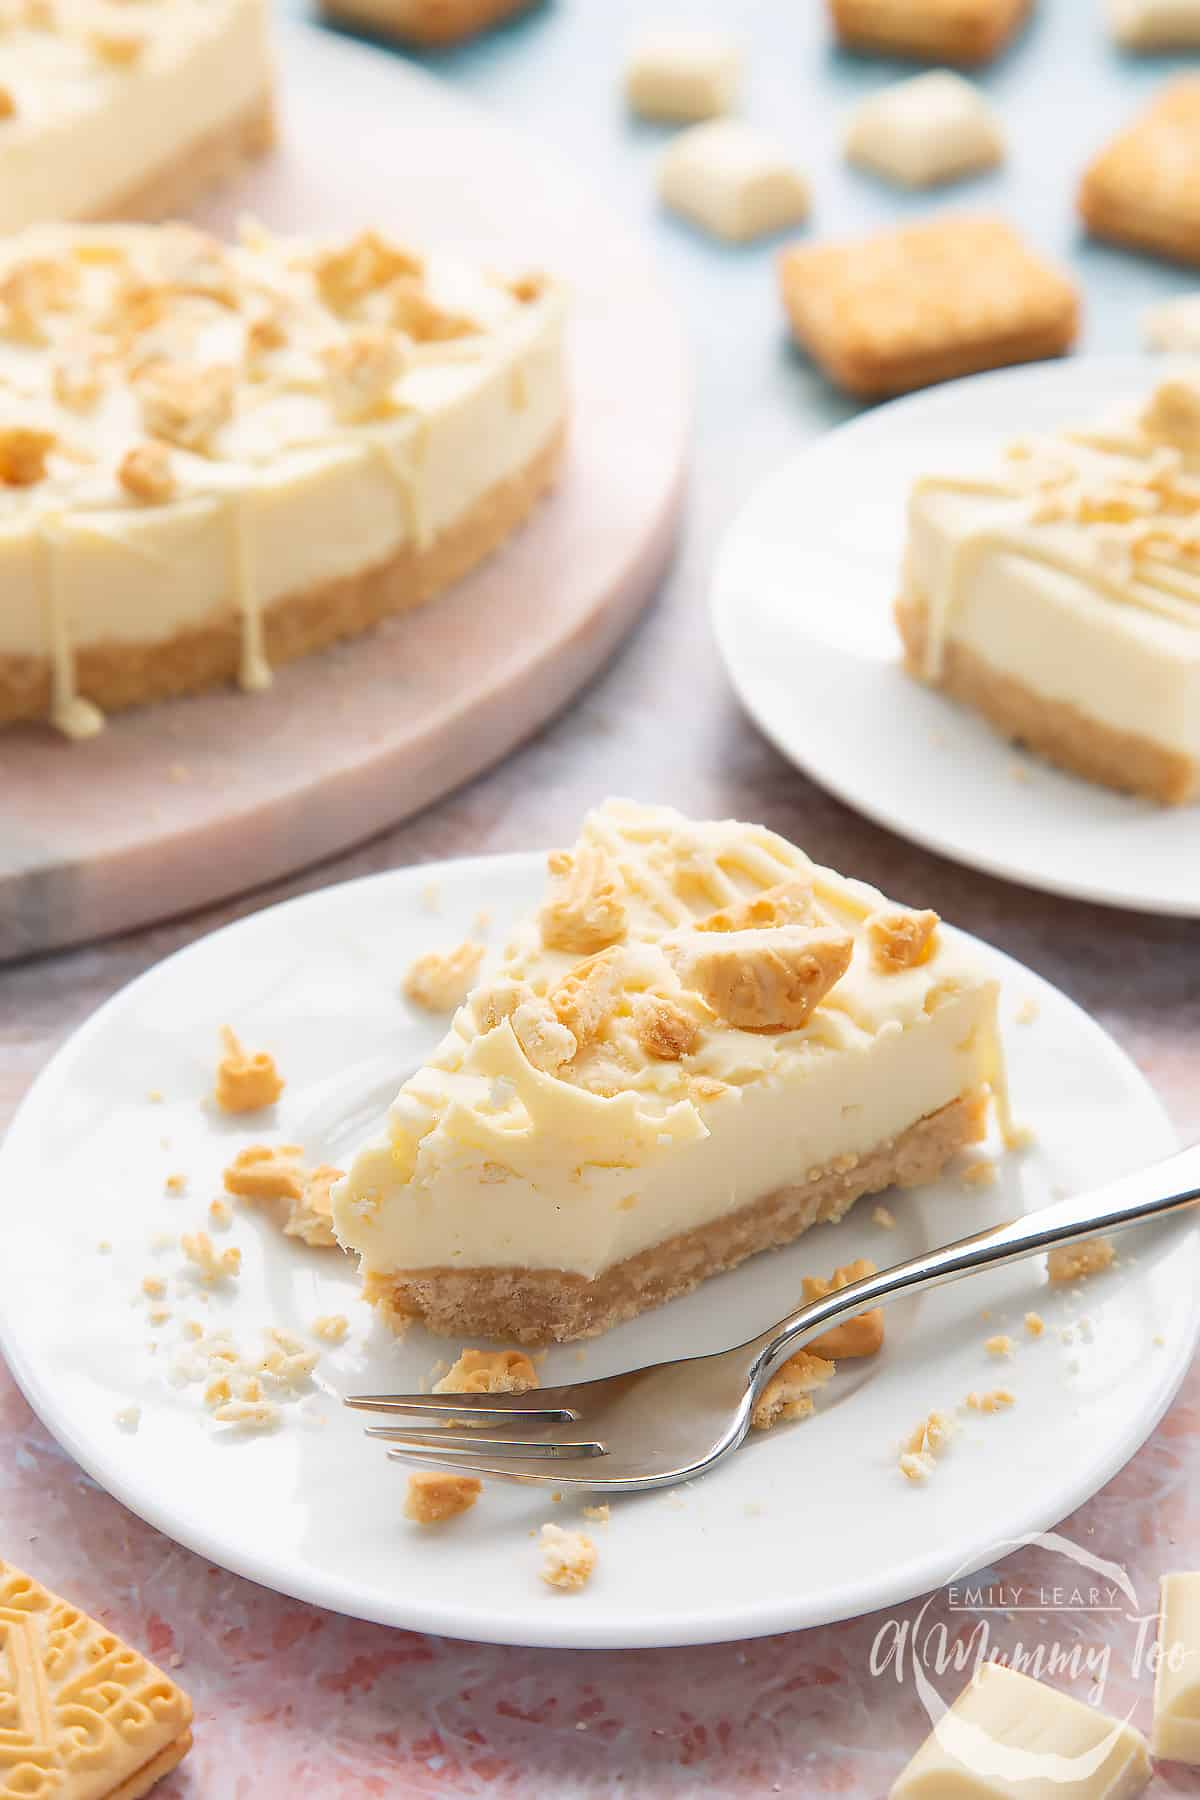 Front view shot of white chocolate cheesecake on a white plate with a fork